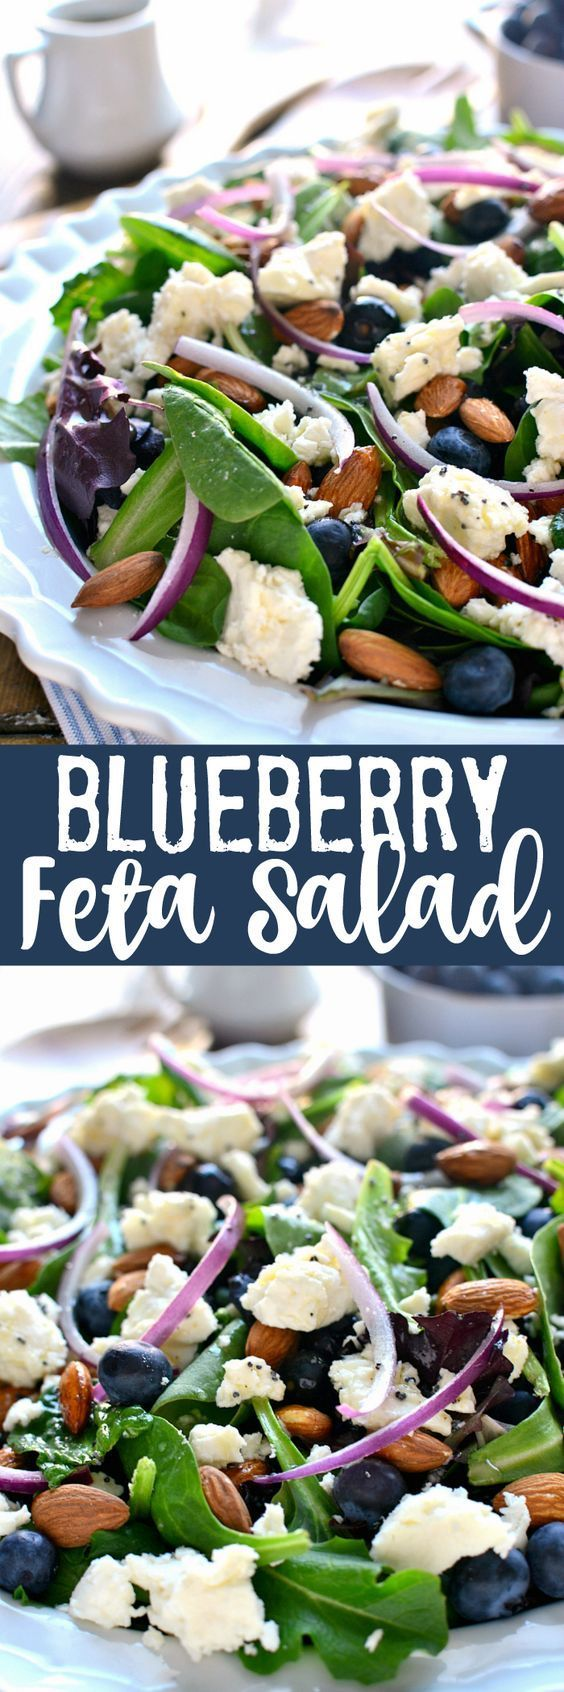 Lovely 30 Most Pinned Salad Recipes on Pinterest                                       ...